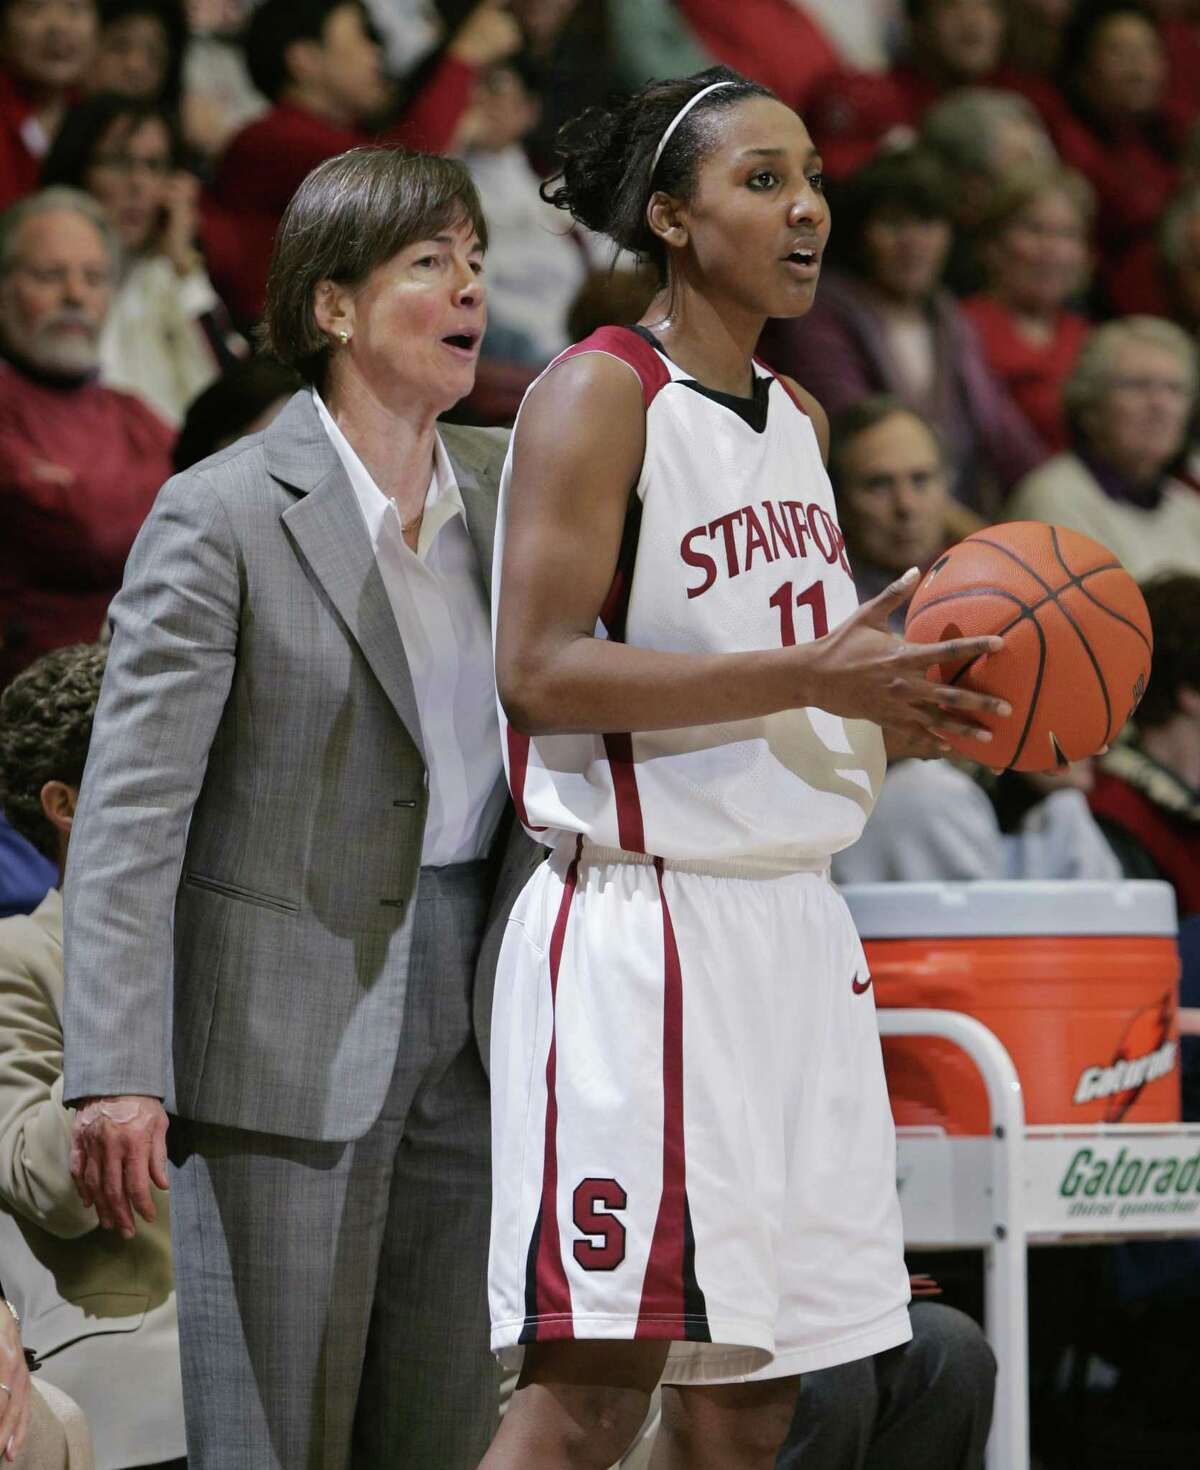 Stanford guard Candice Wiggins (11) listens to head coach Tara VanDerveer, left, in the second half against UCLA during their NCAA basketball game in Stanford, Calif., Saturday, Feb. 2, 2008. Stanford defeated UCLA 75-62. Wiggins was game high scorer with 31 points. (AP Photo/Paul Sakuma)